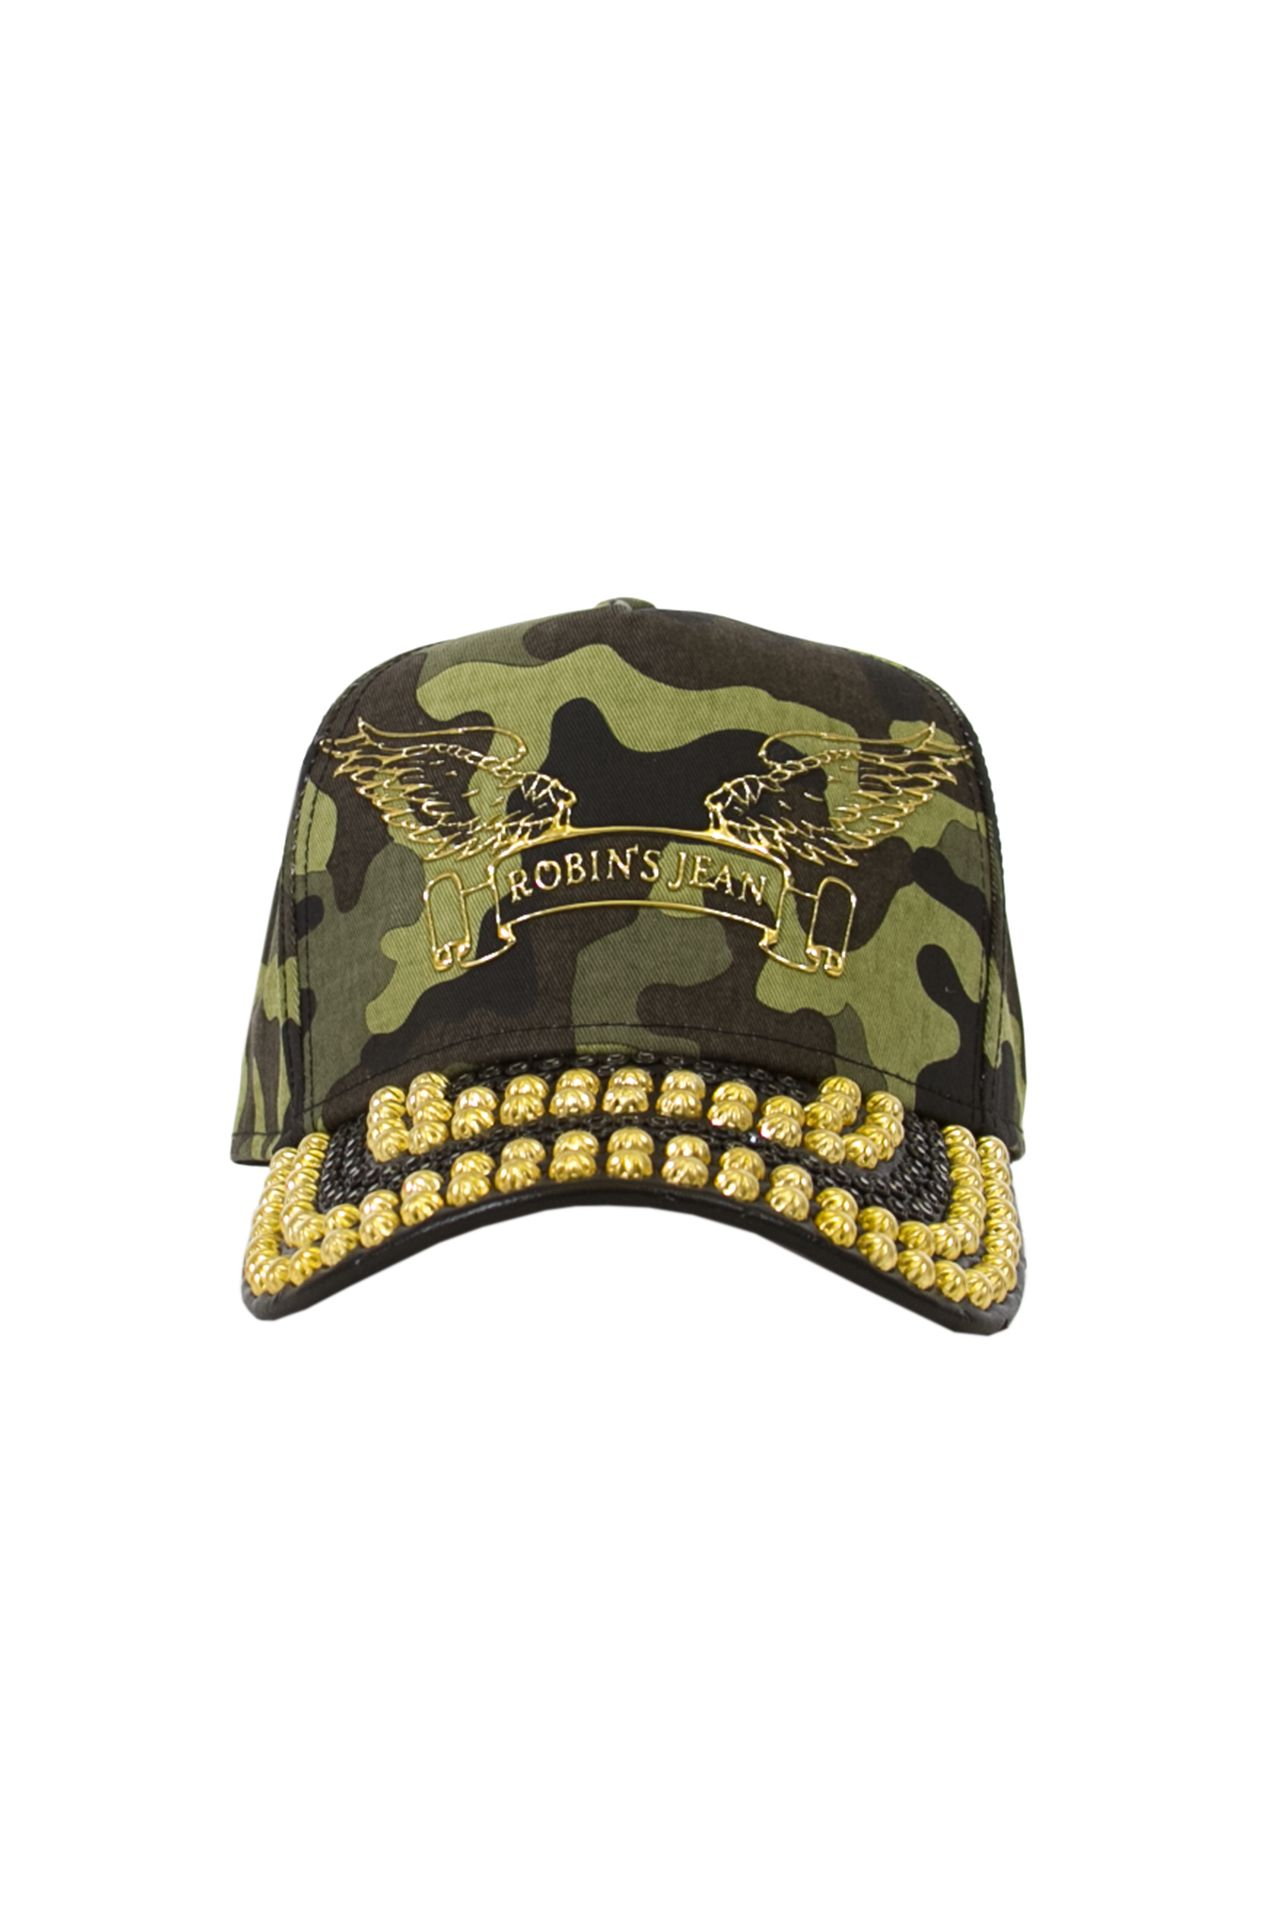 GREEN CAMO CAP WITH LEATHER LOOK BILL STUDDED